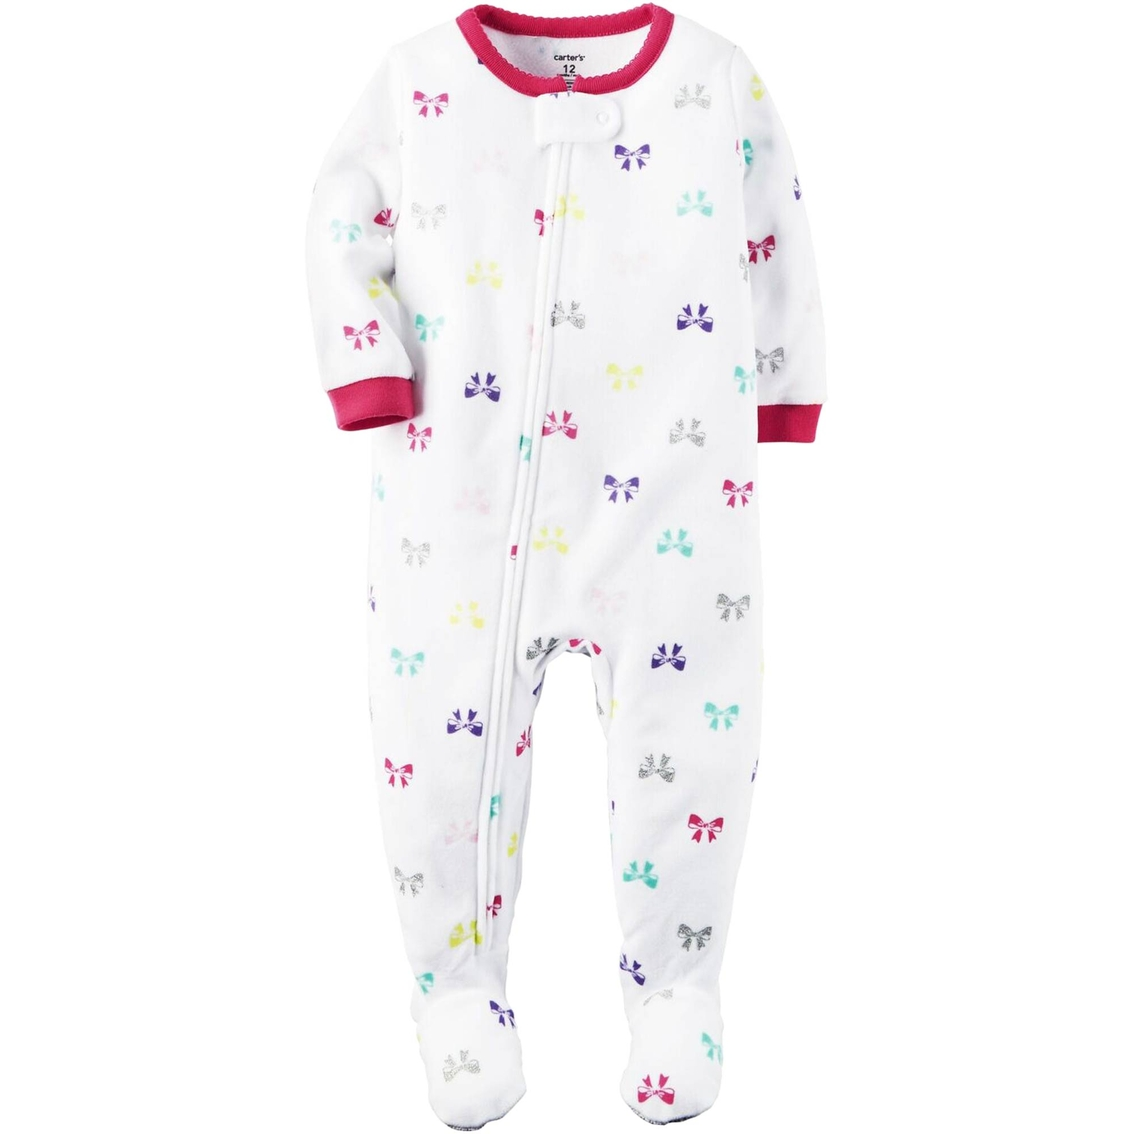 bfef9e9e0e42 Carter s Toddler Girls 1 Pc. Multicolor Bow Print Footed Pajamas ...